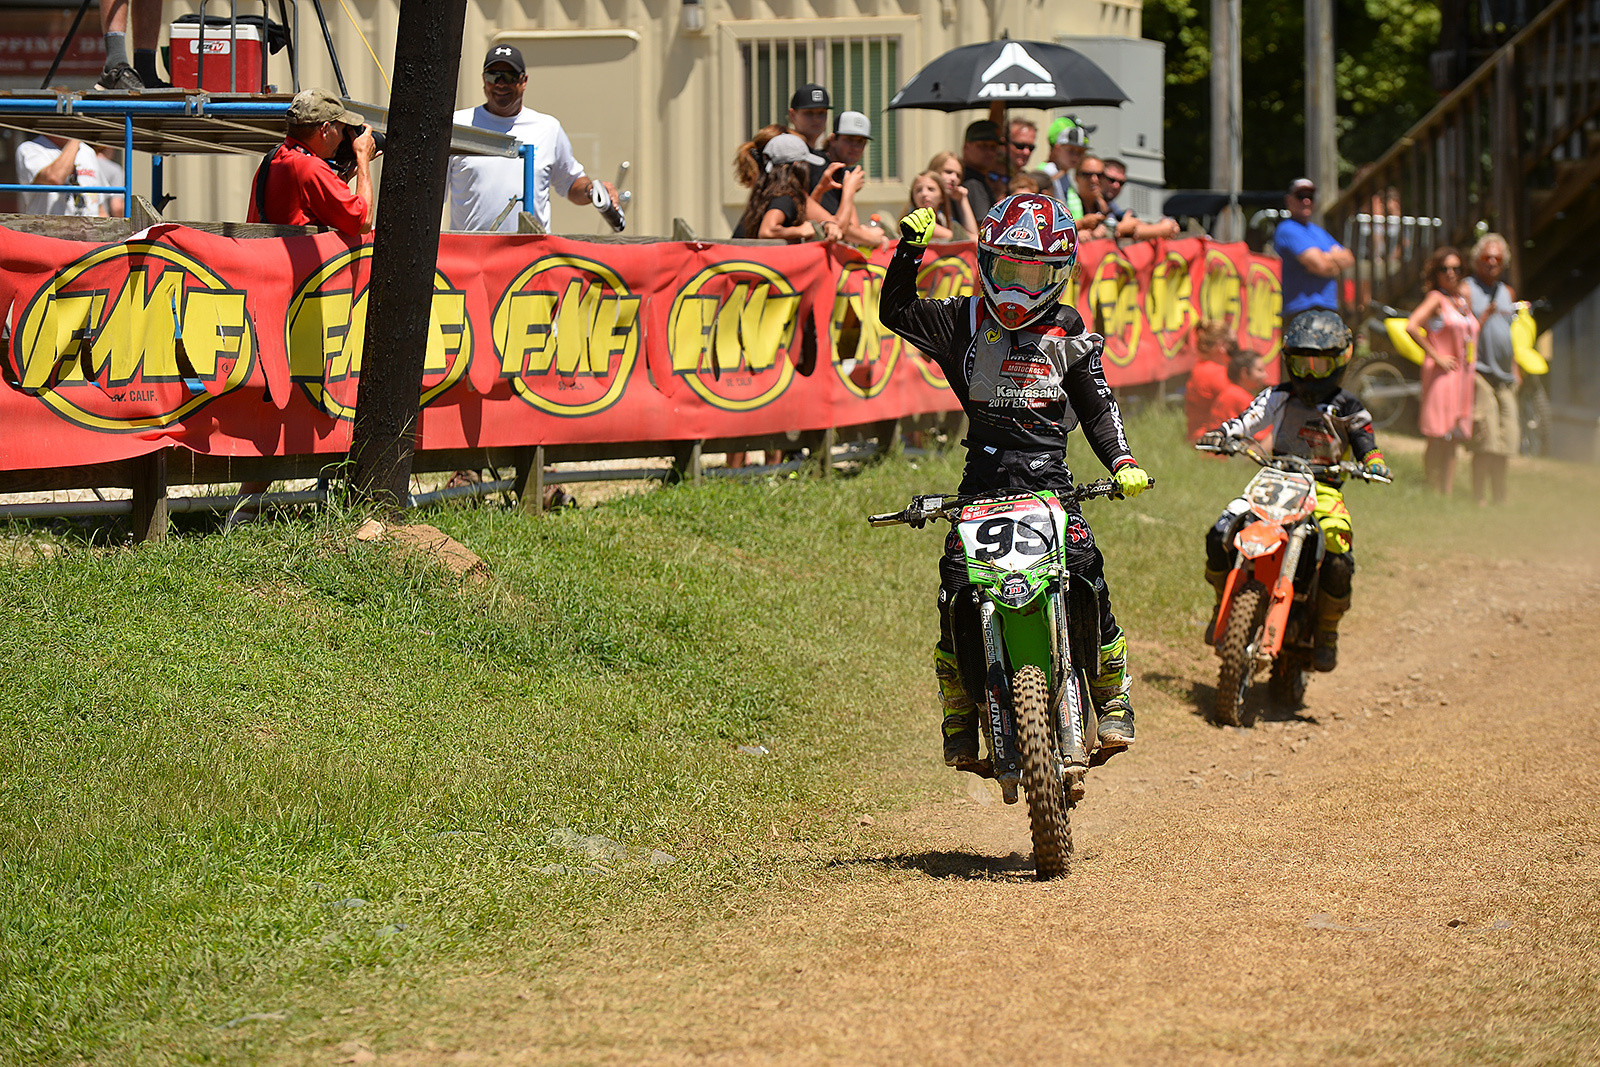 Ryder Difrancesco celebrates as he wins the 85 (9-11) Limited National Championship at the 36th Annual Rocky Mountain ATV/MC AMA Amateur National Motocross Championship at Loretta Lynn's.